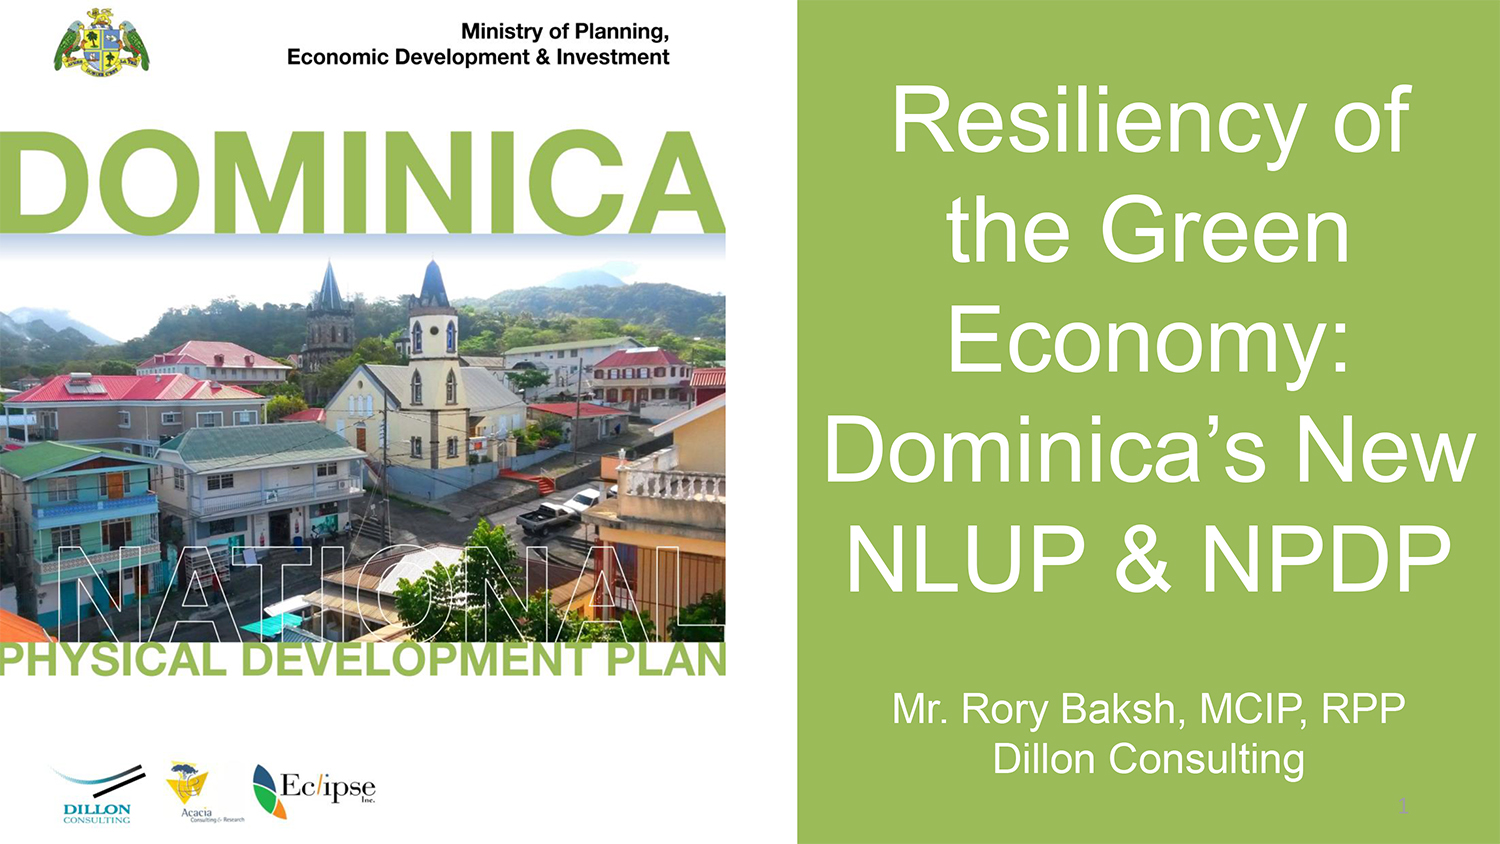 2017-05-16 CUF Belize Presentation on Dominica NLUP NPDP - V2-1